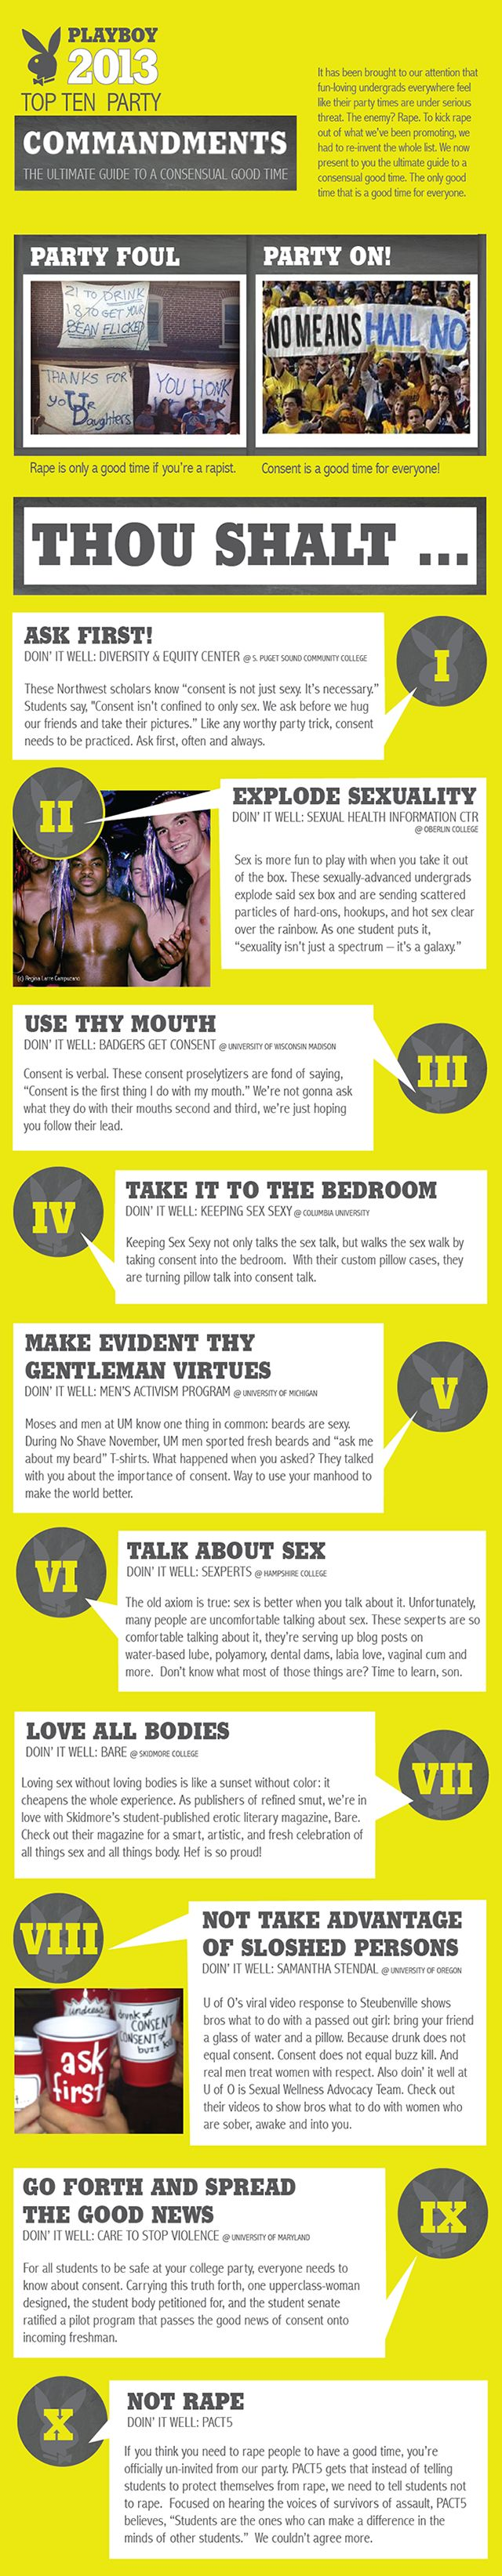 Hackers recently decided to take Playboy's annual party guide aimed towards college students and make it a little more consent-friendly. The result? An awesomely redesigned list of The Top 10 Party Commandments: The Ultimate Guide For A Consensual Good Time.  The list may be fake, but it's a great reminder that consent means a good time for everyone. Read more about it here: http://huff.to/16nnzn0